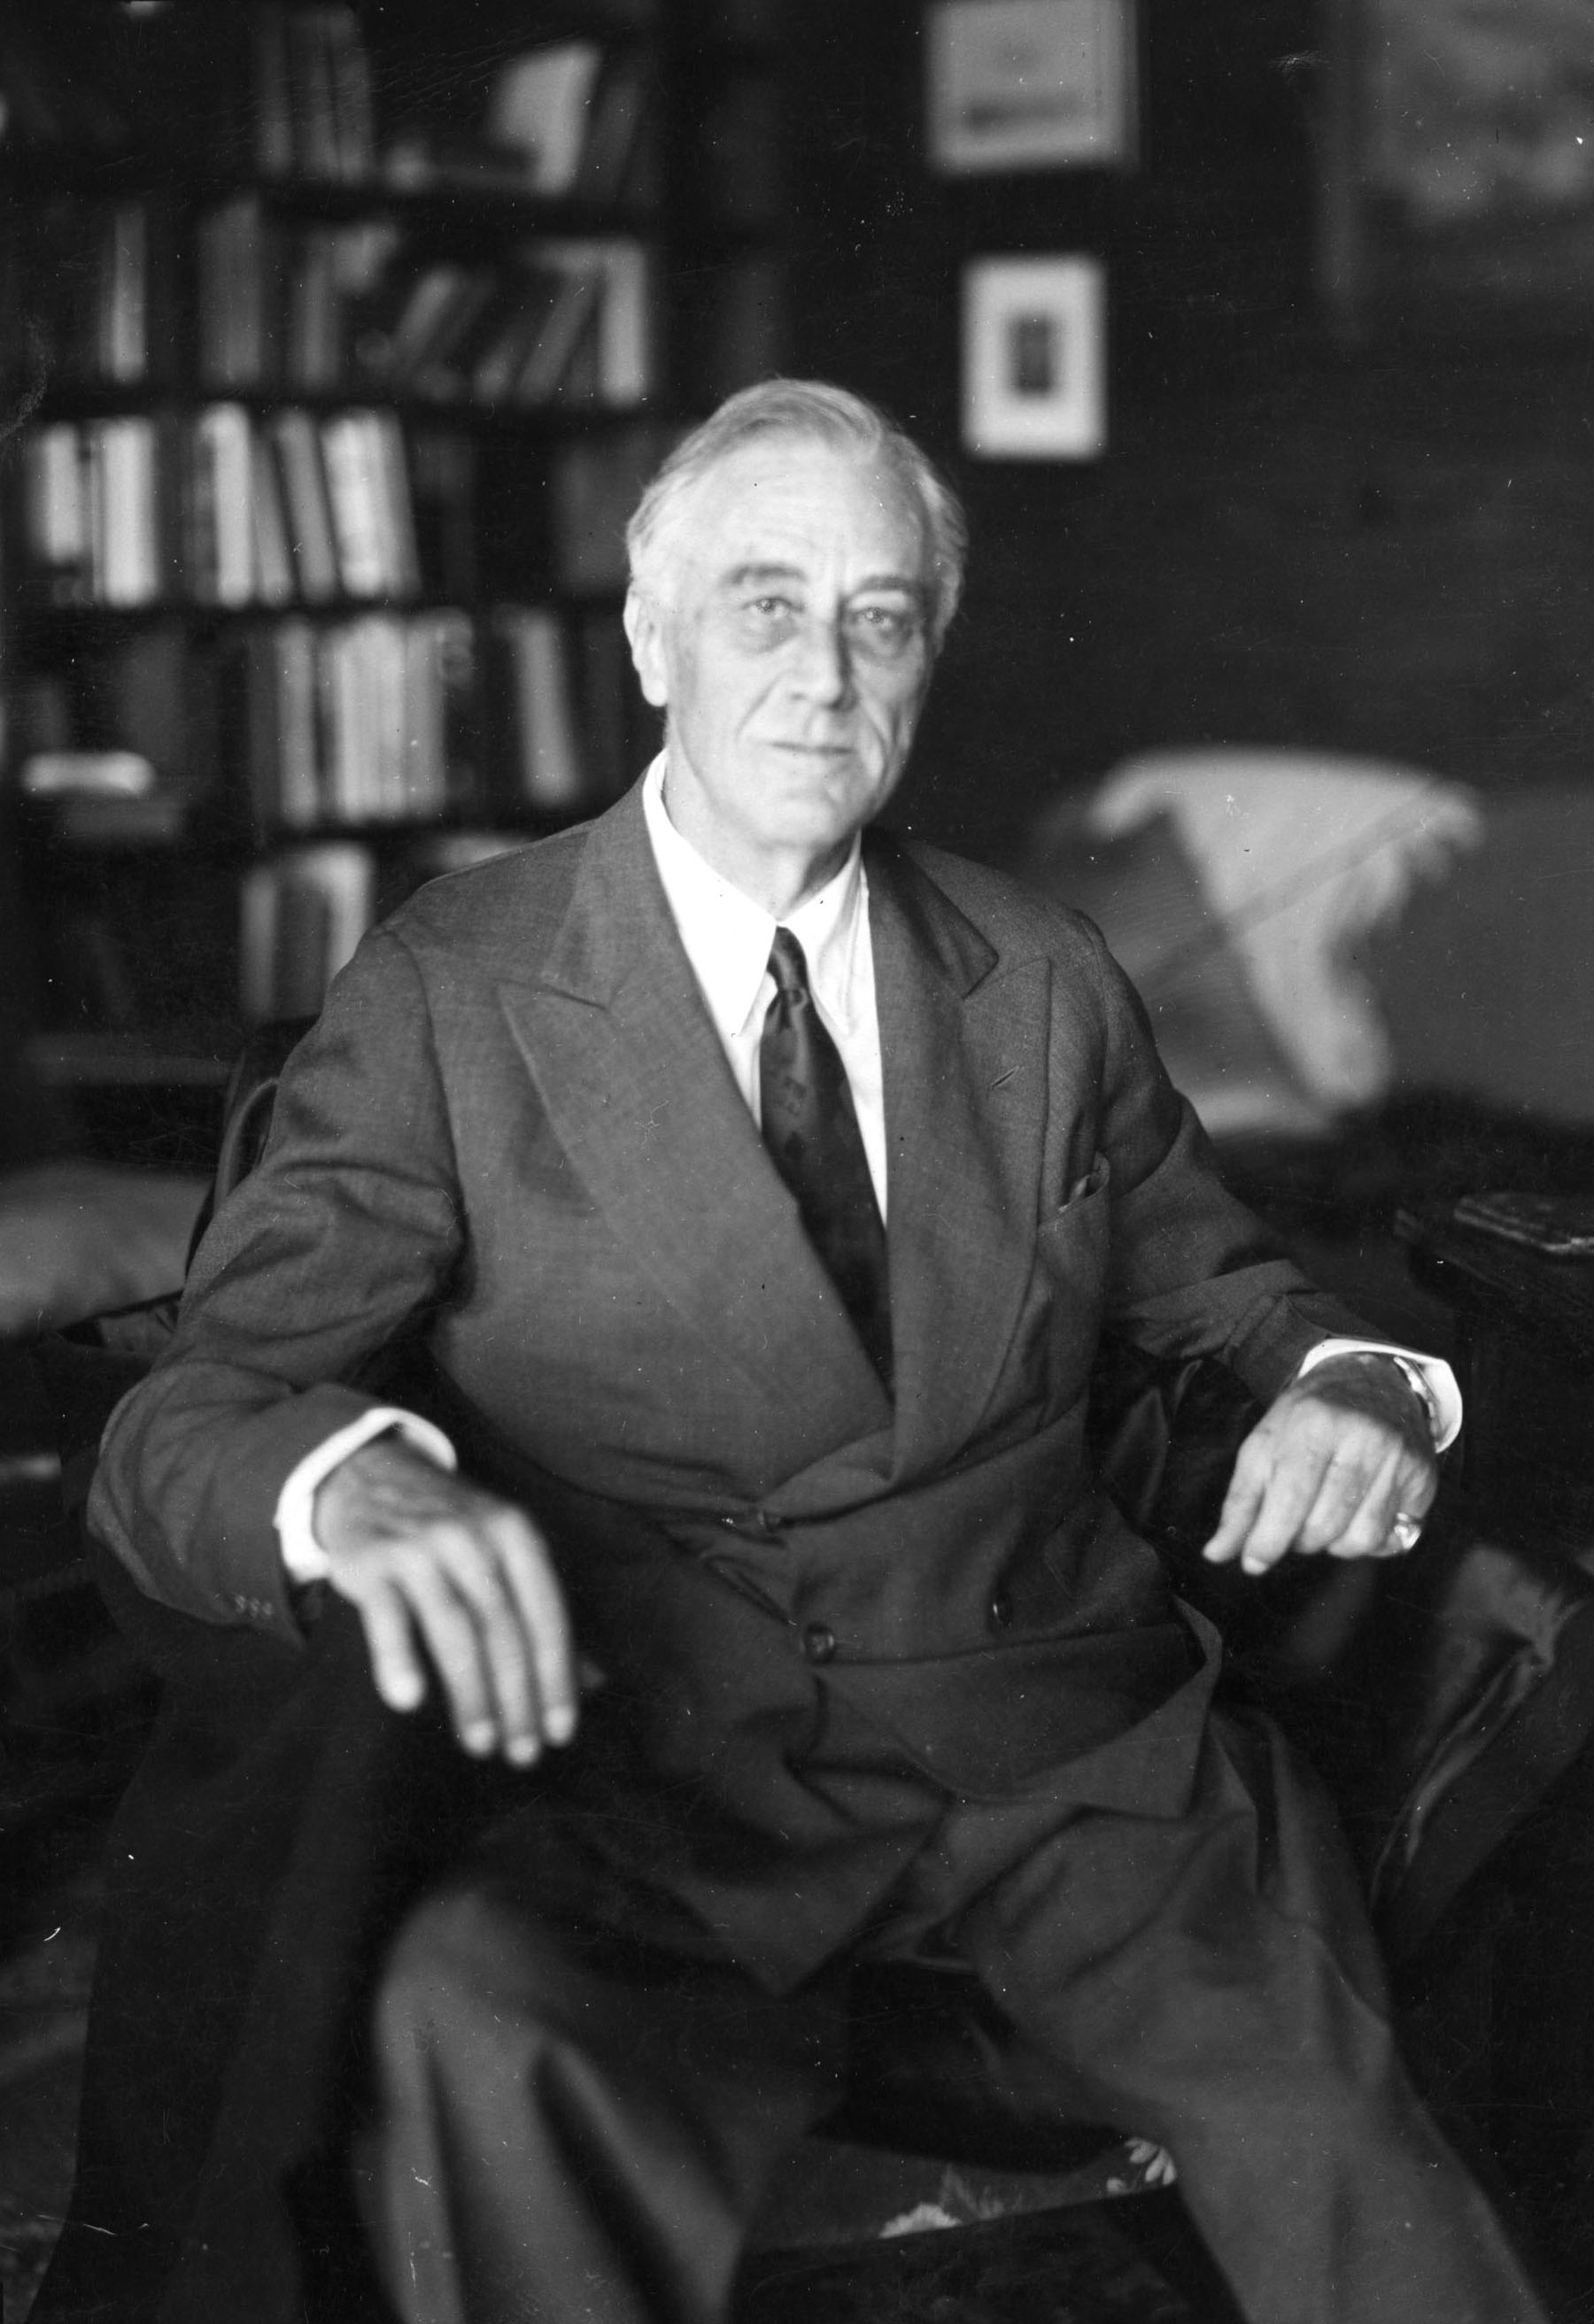 an analysis of roosevelt a liberal and hoover a conservative in american history